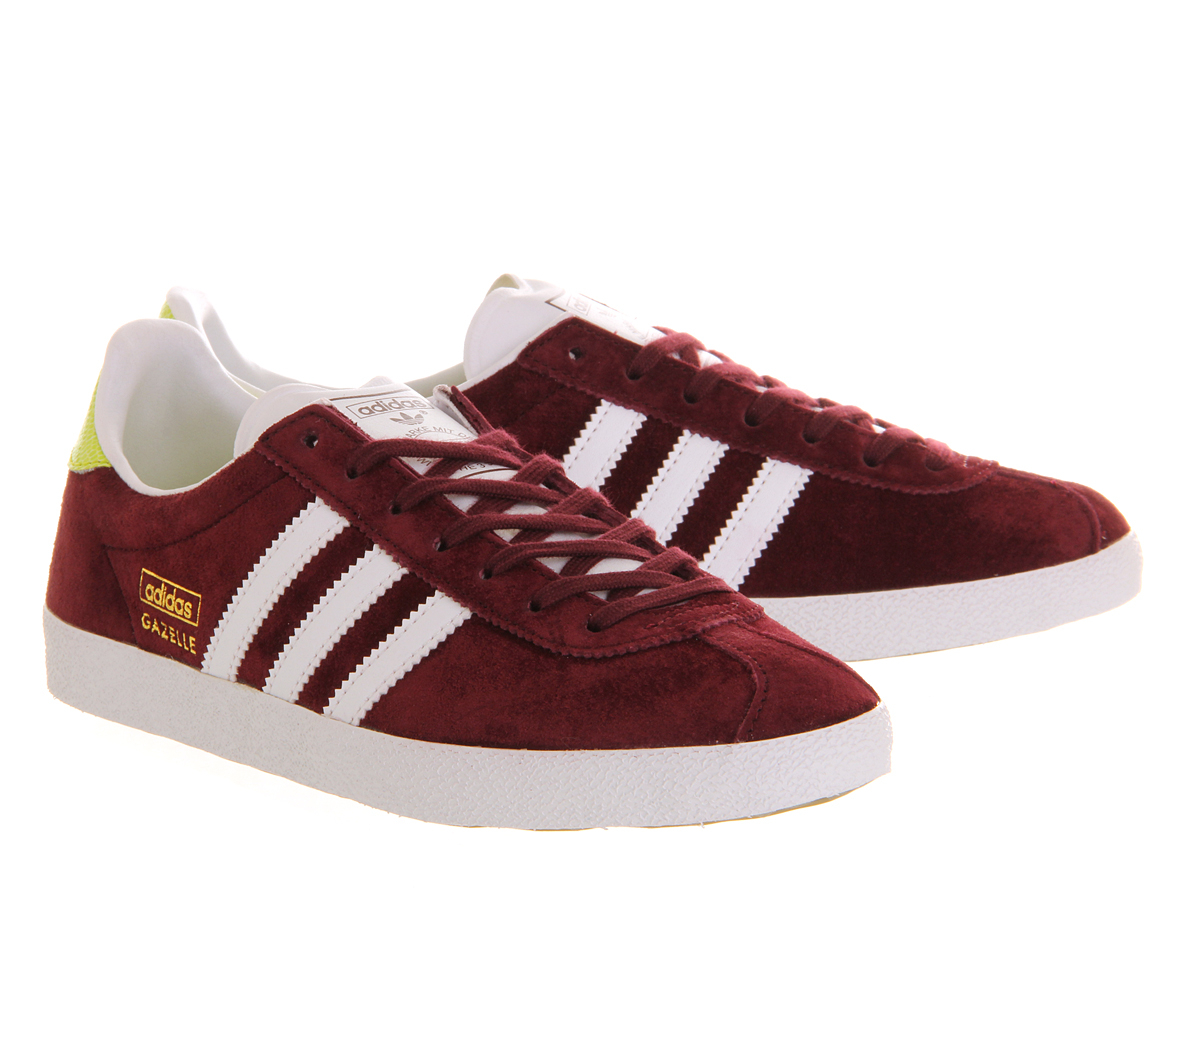 adidas gazelle og w in purple maroon lyst. Black Bedroom Furniture Sets. Home Design Ideas